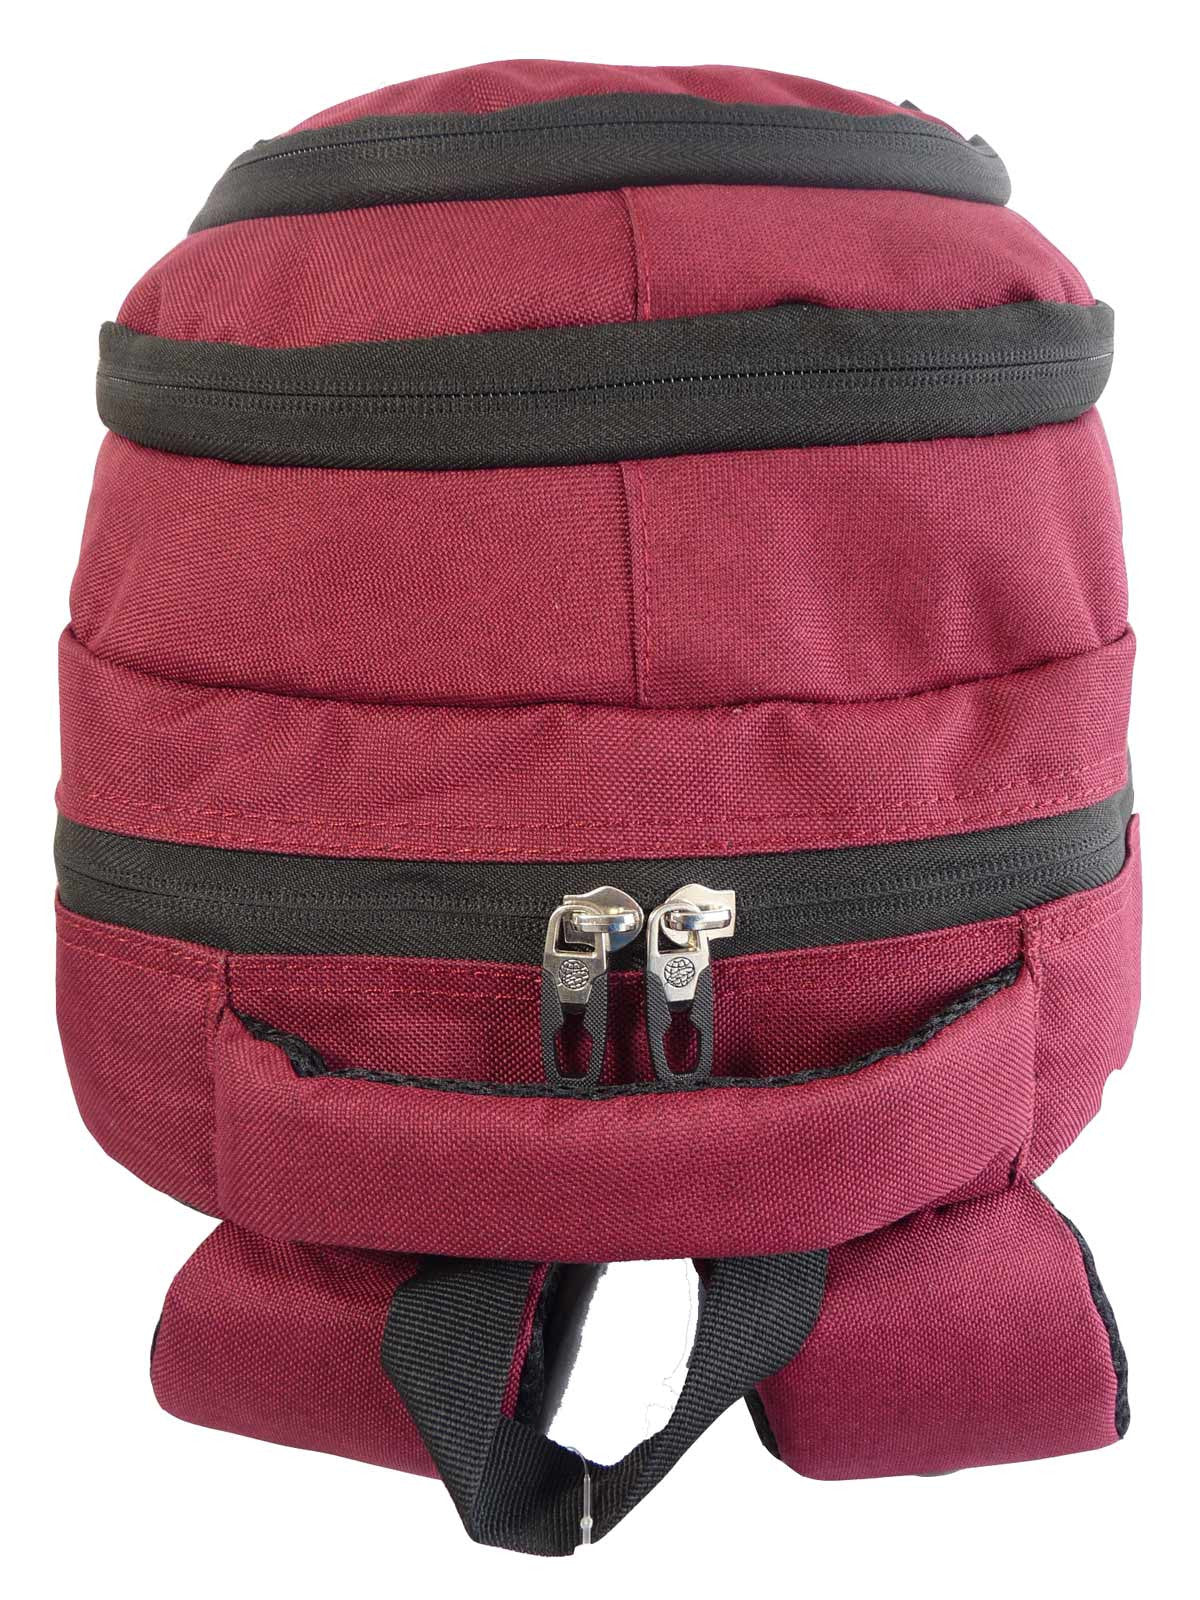 Laptop Macbook Backpack Rucksack Bag RL43Bu Top View